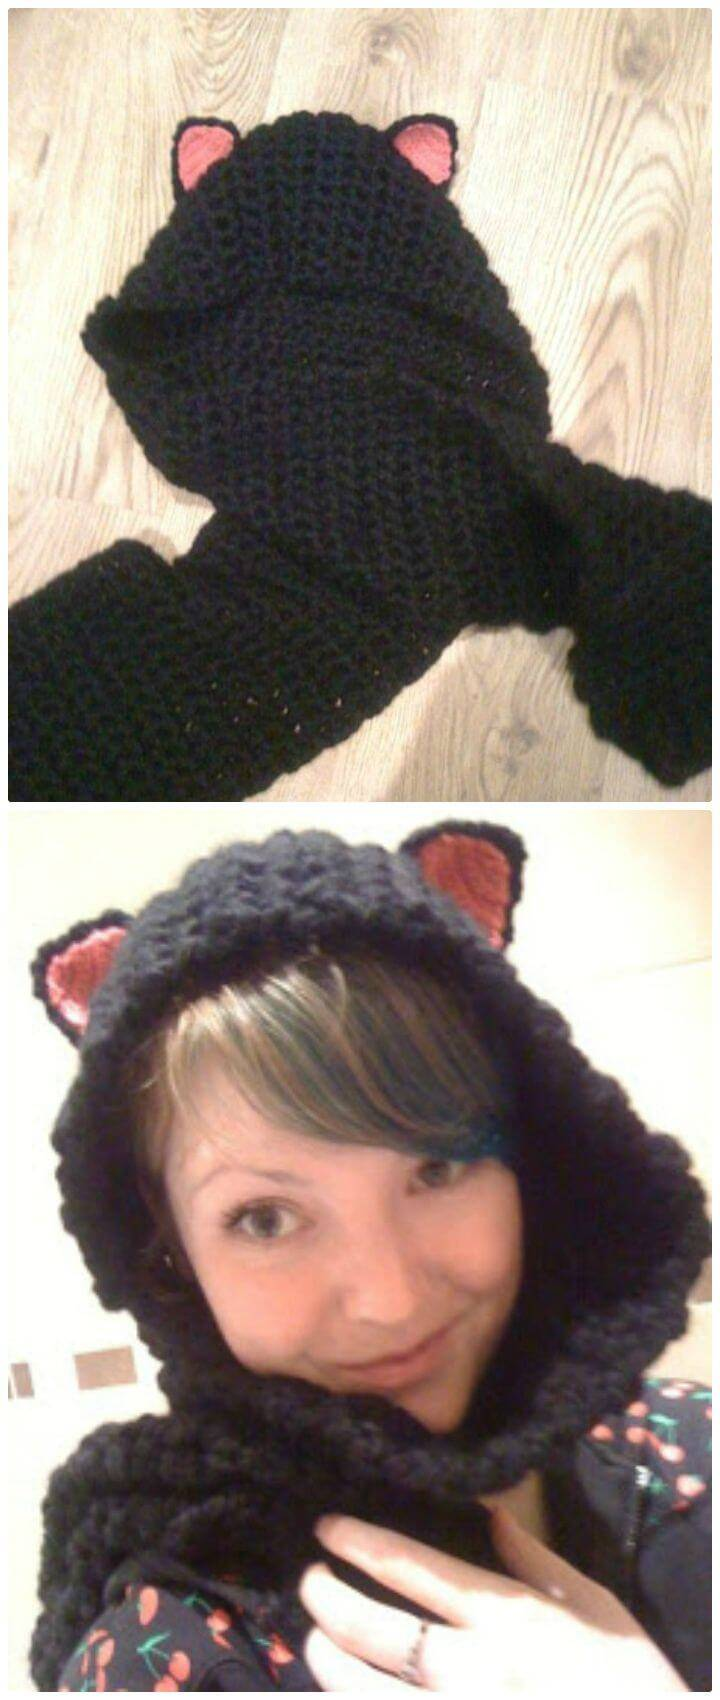 How To Free Crochet Kitty Hooded Scarf Pattern